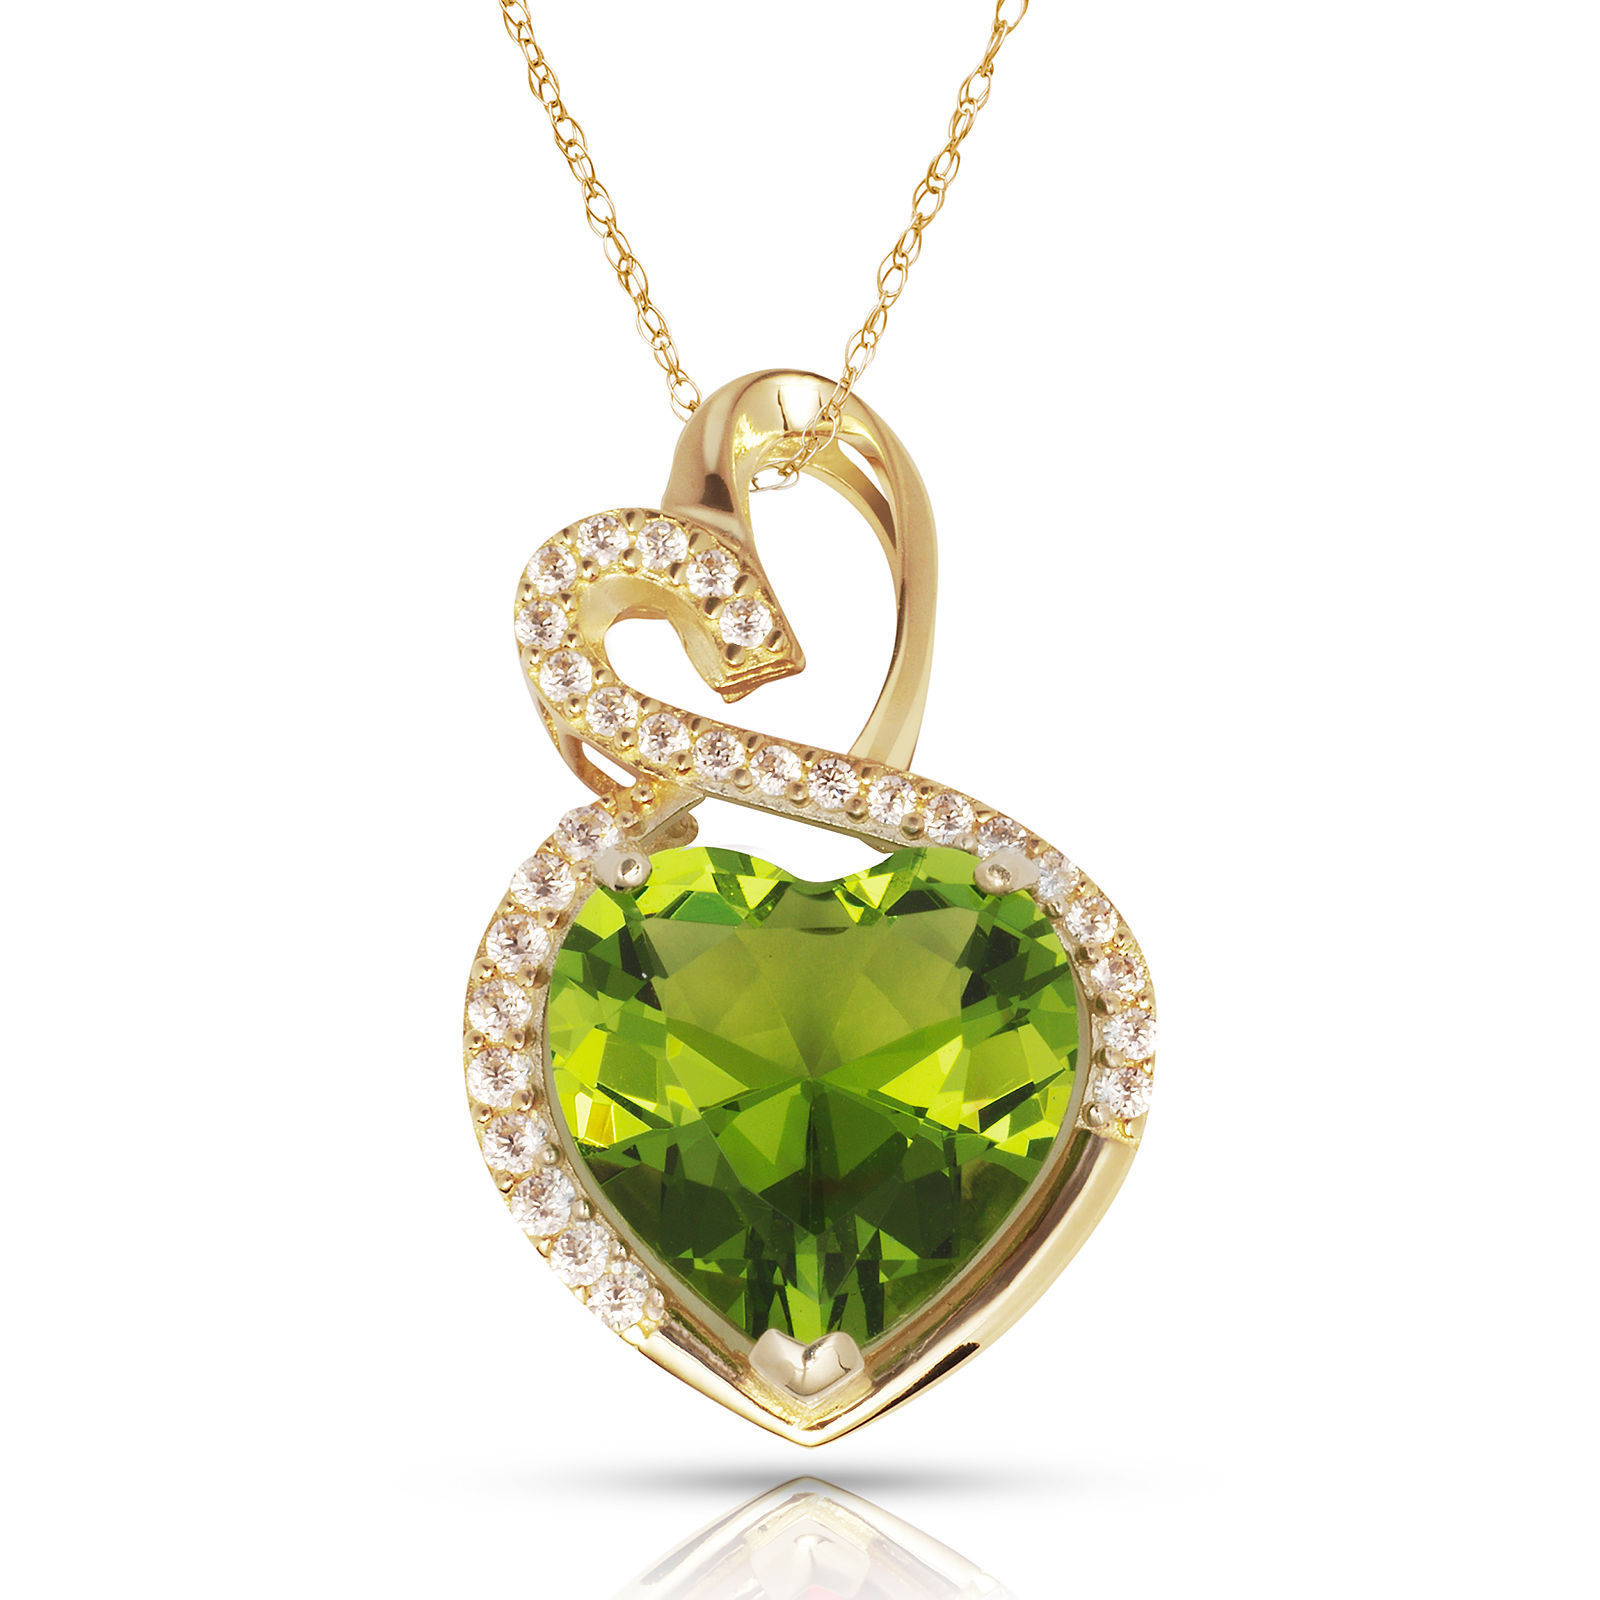 4.20 Carat Halo Blue Peridot Double Heart Gemstone Pendant & Necklace14K Y Gold